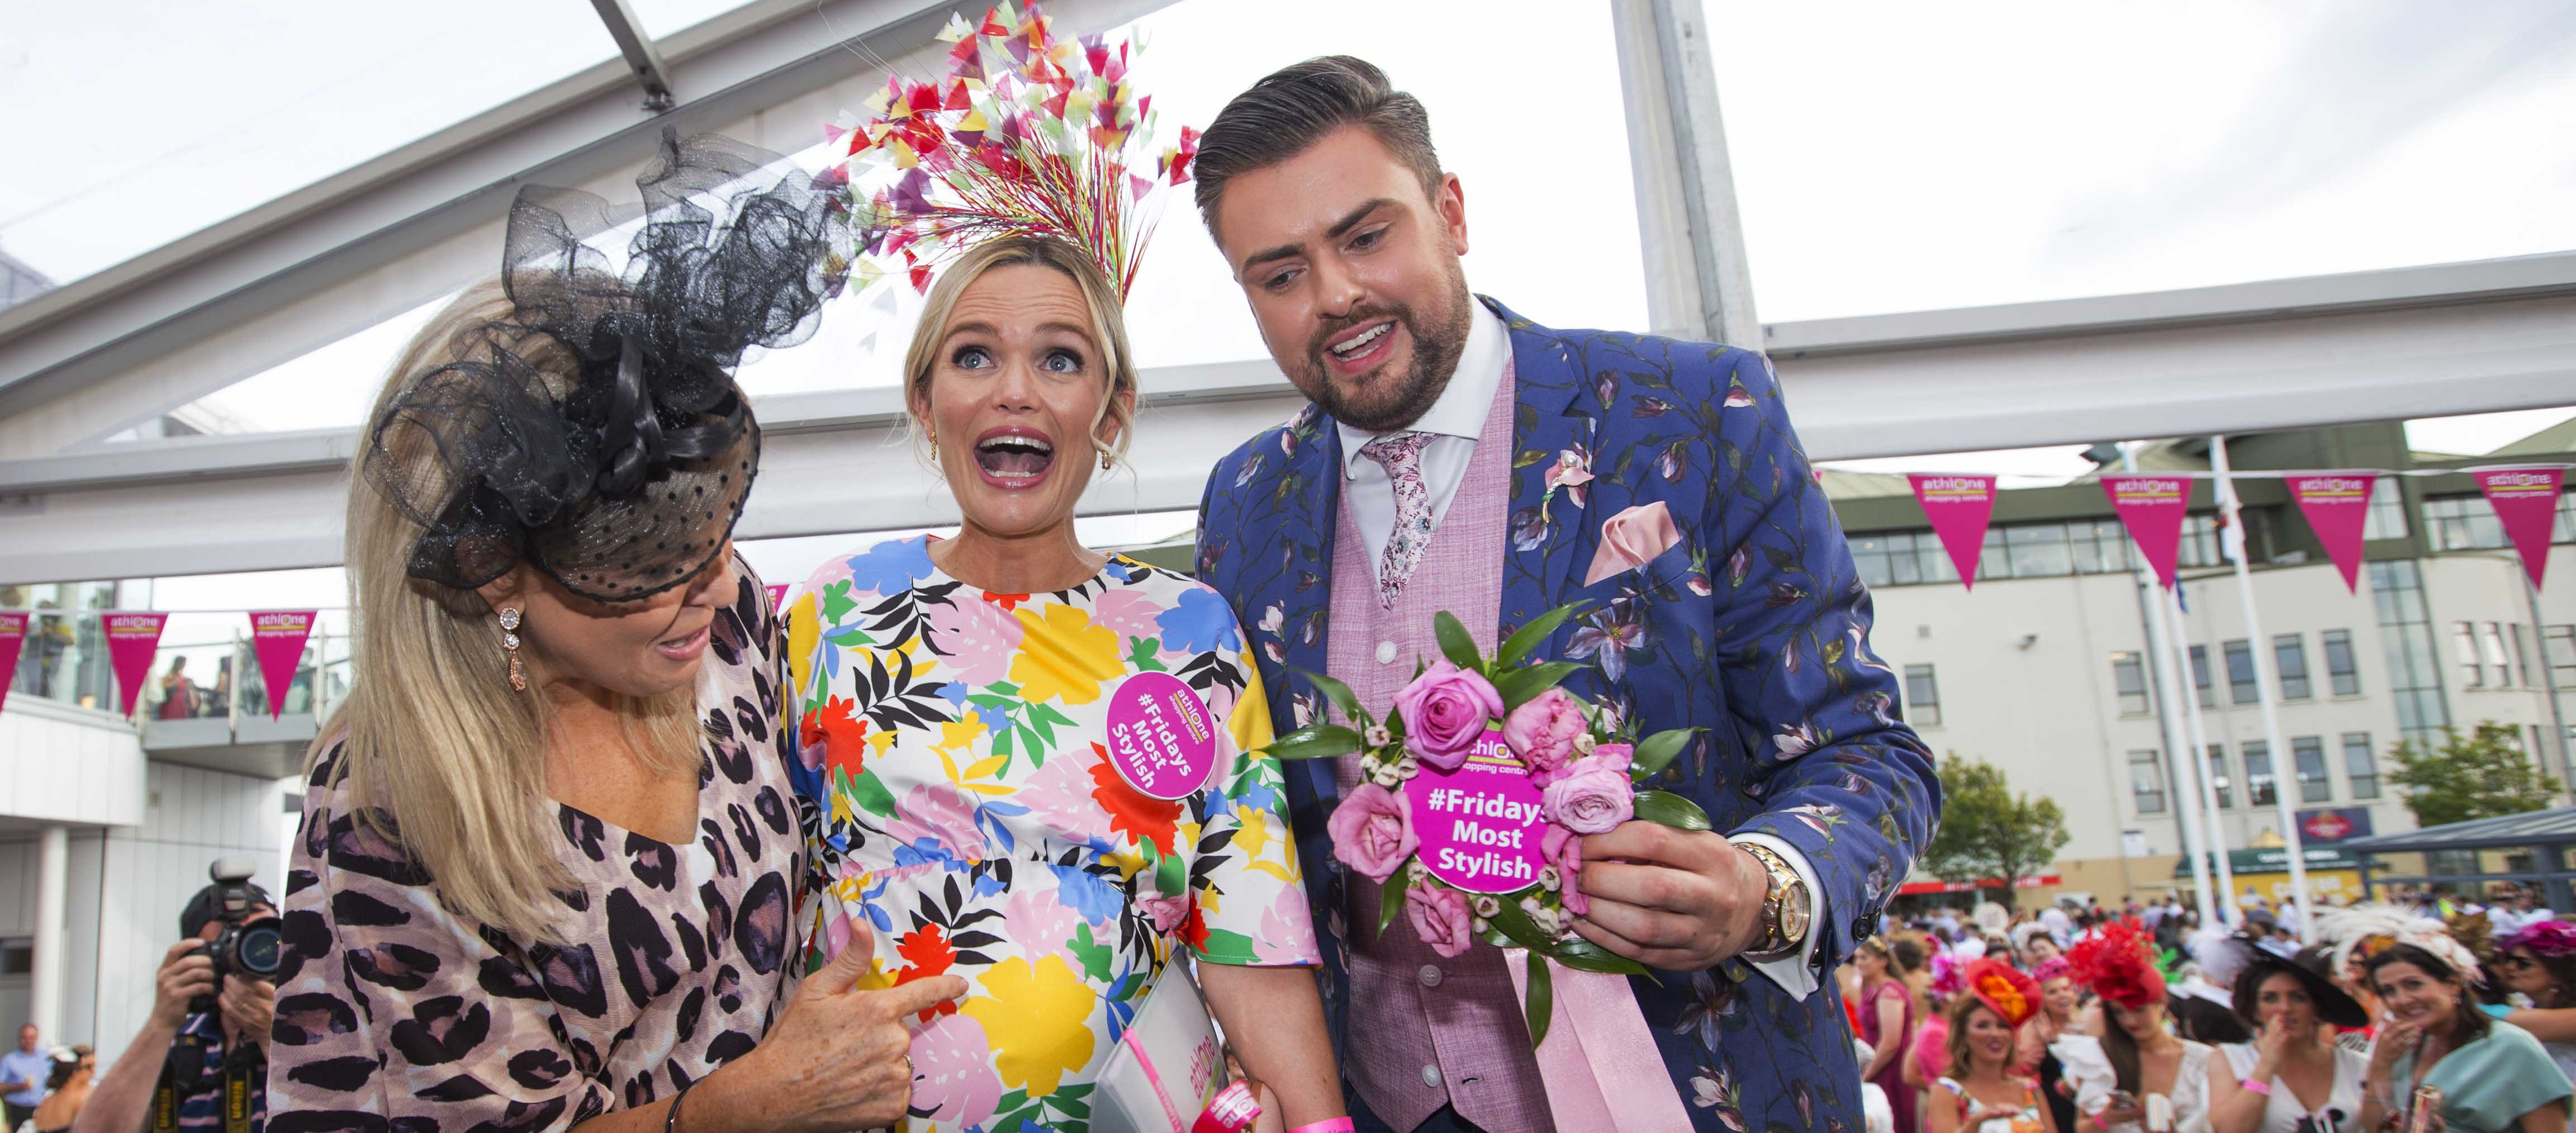 38 weeks pregnant woman wins Friday's Most Stylish at Galway Races